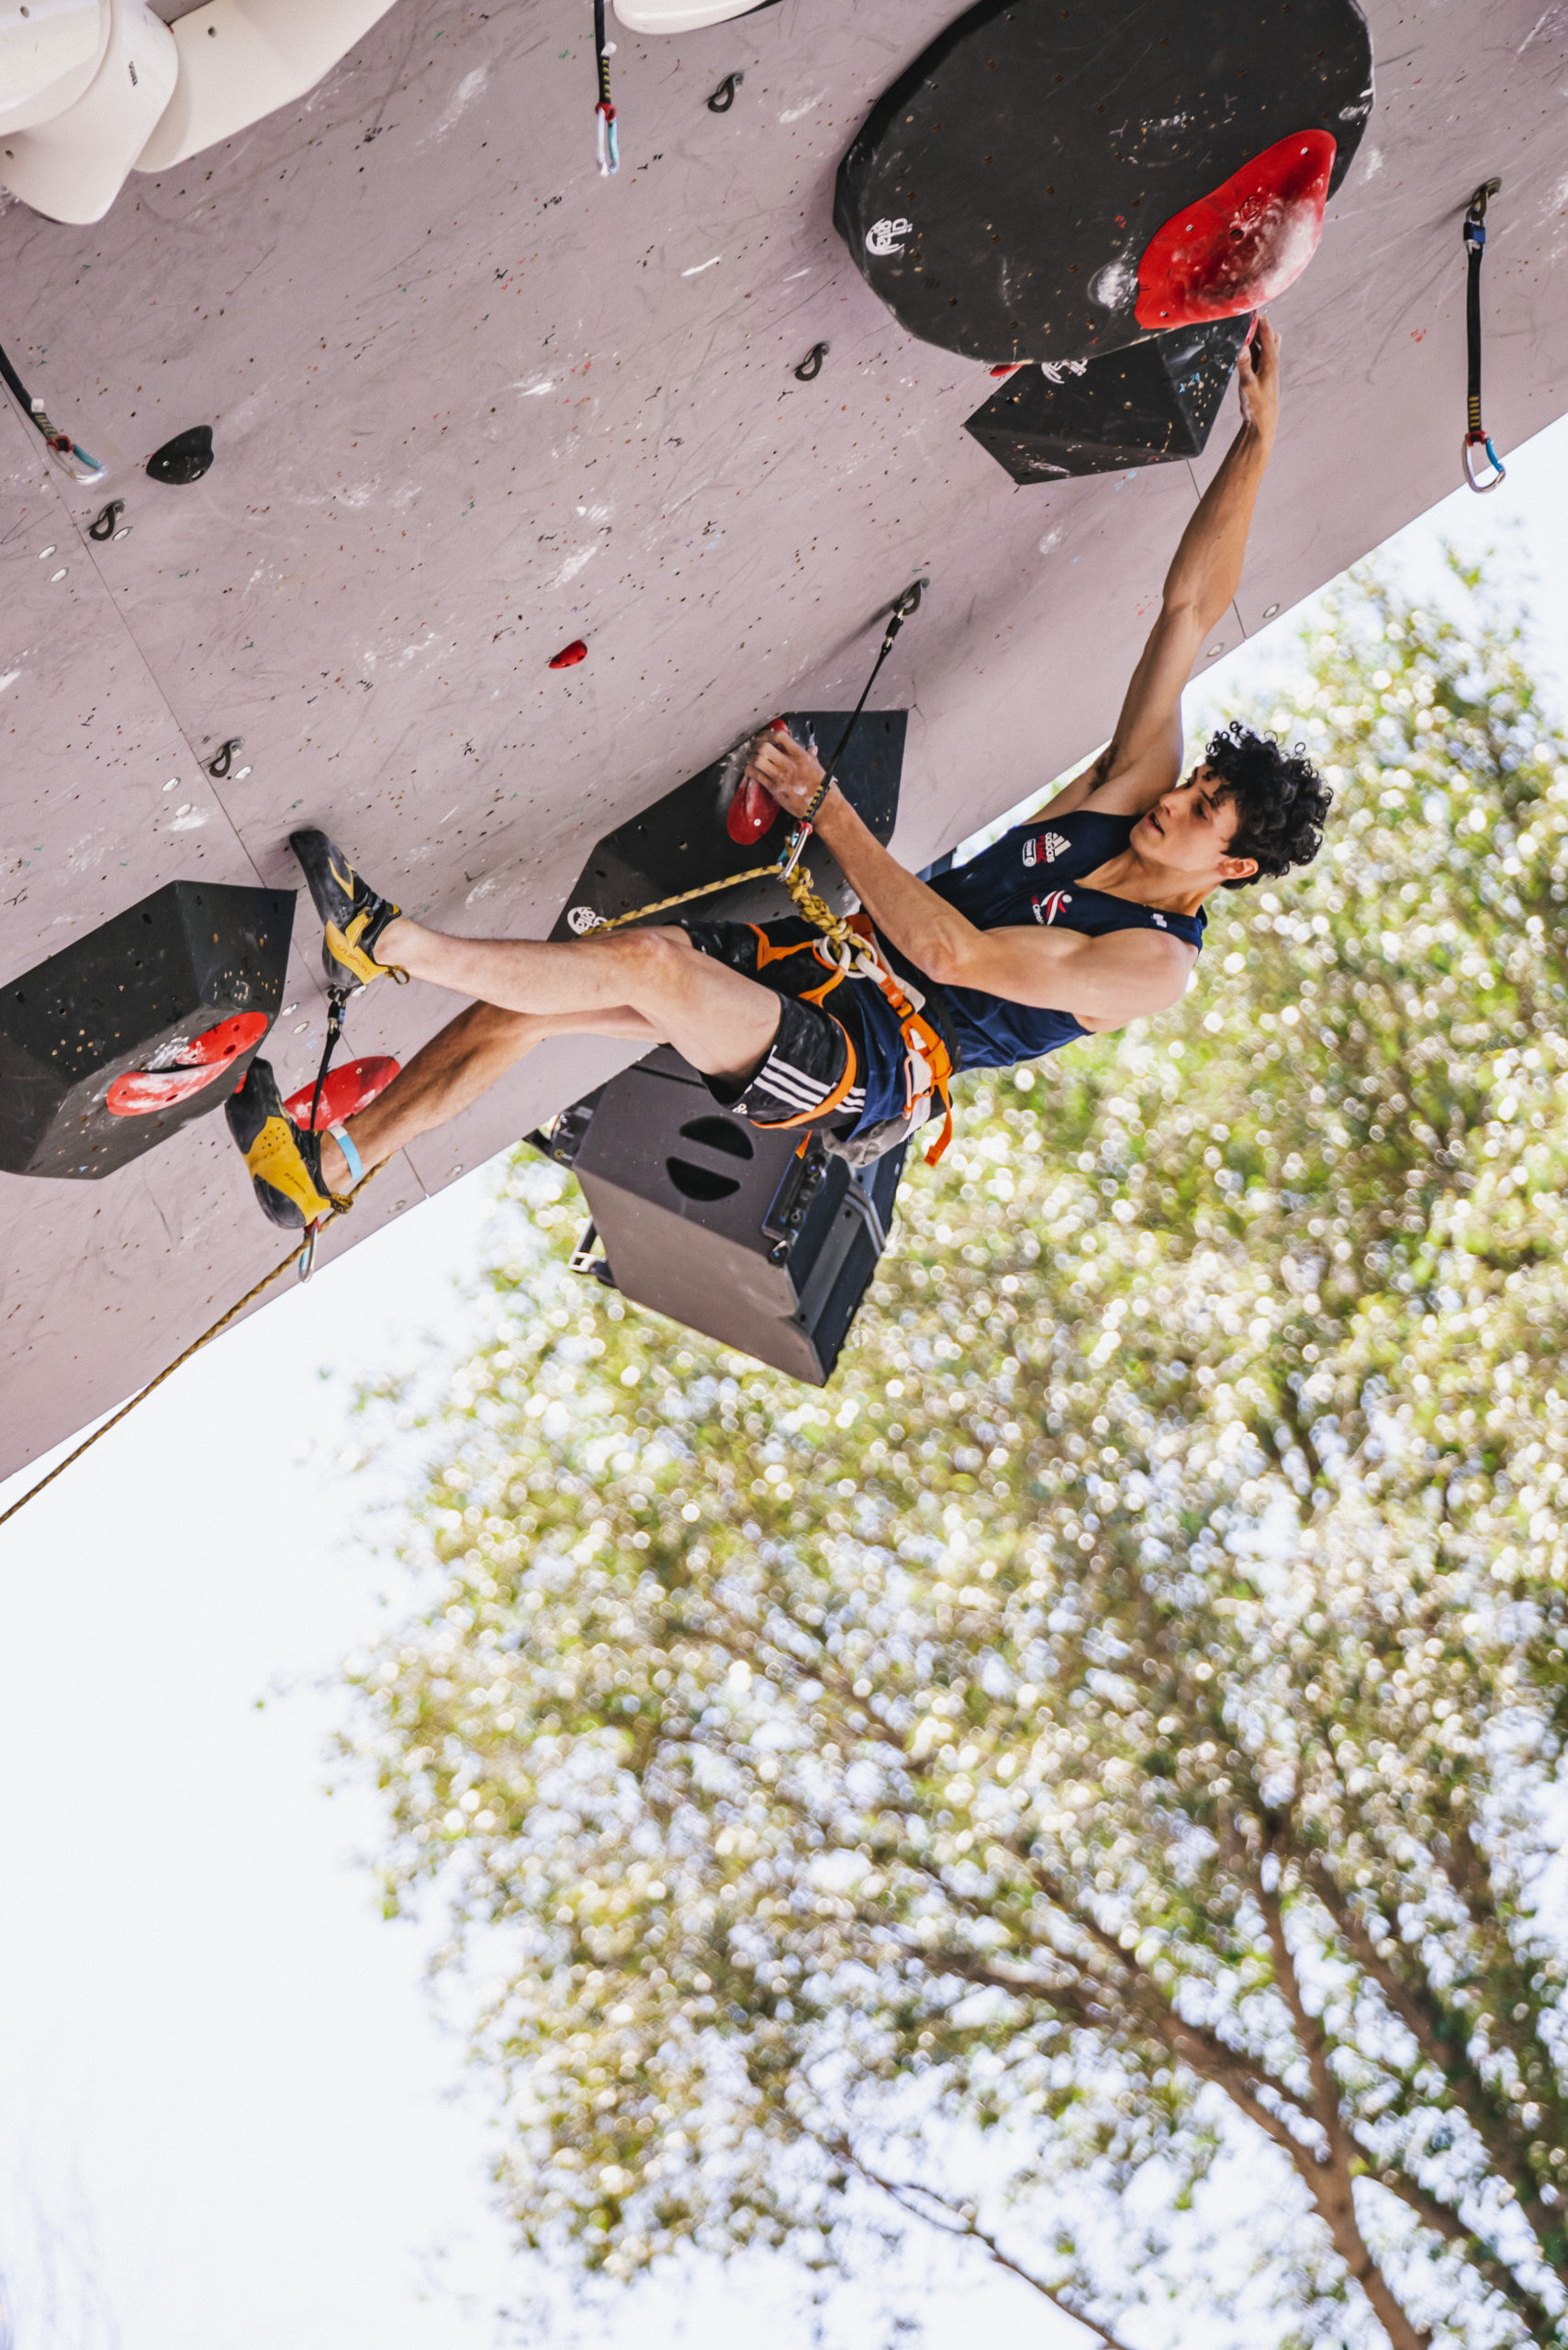 Hamish McArthur at the IFSC Lead World Cup in Briancon